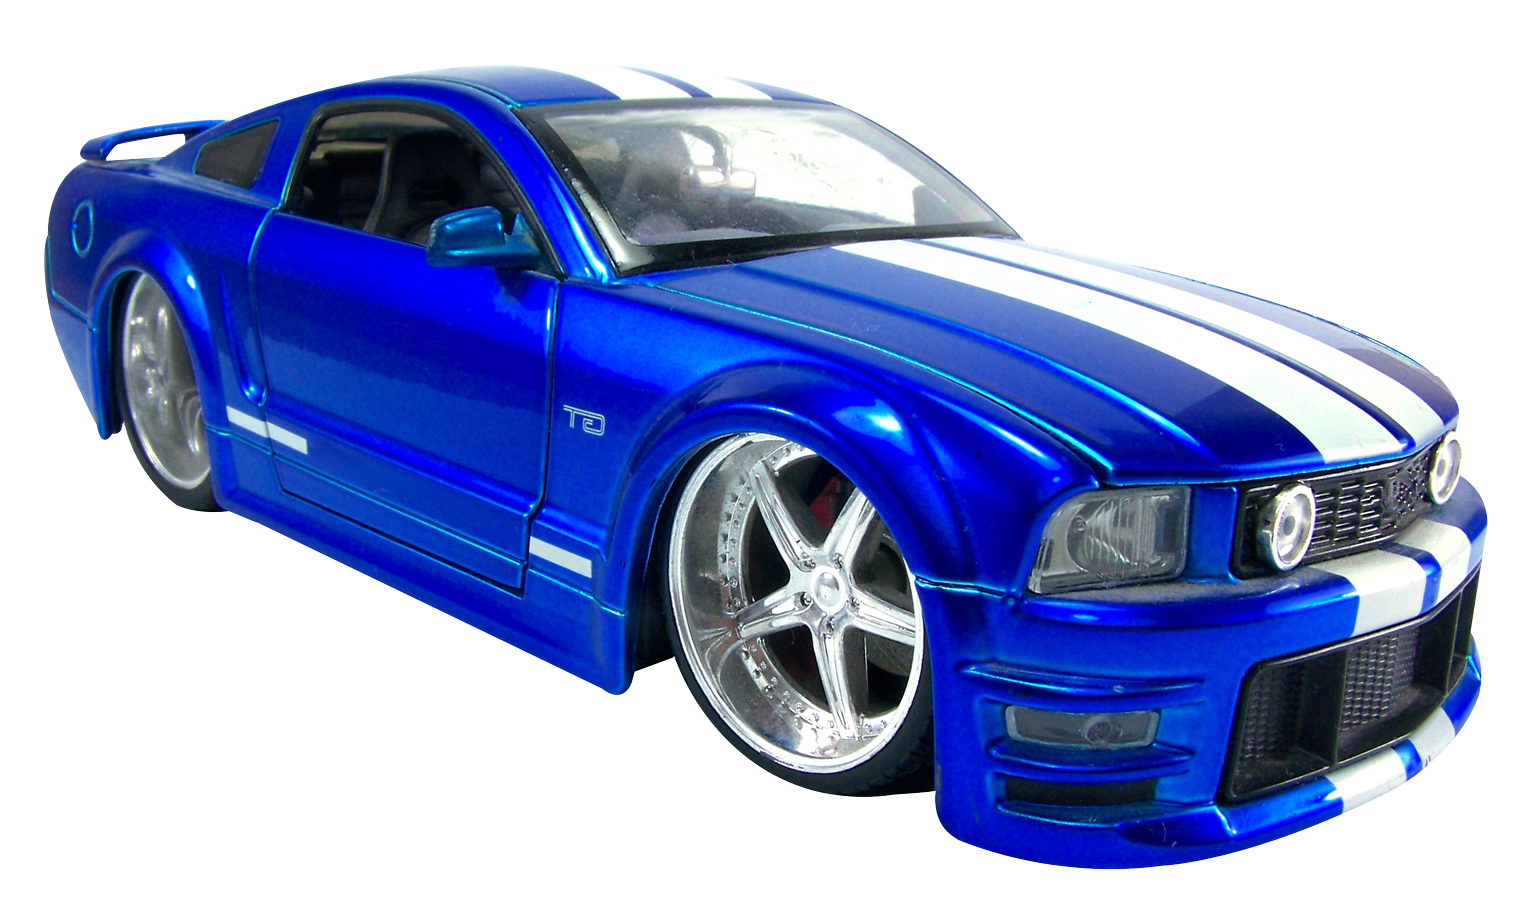 Toy car png. Image pngpix resolution x